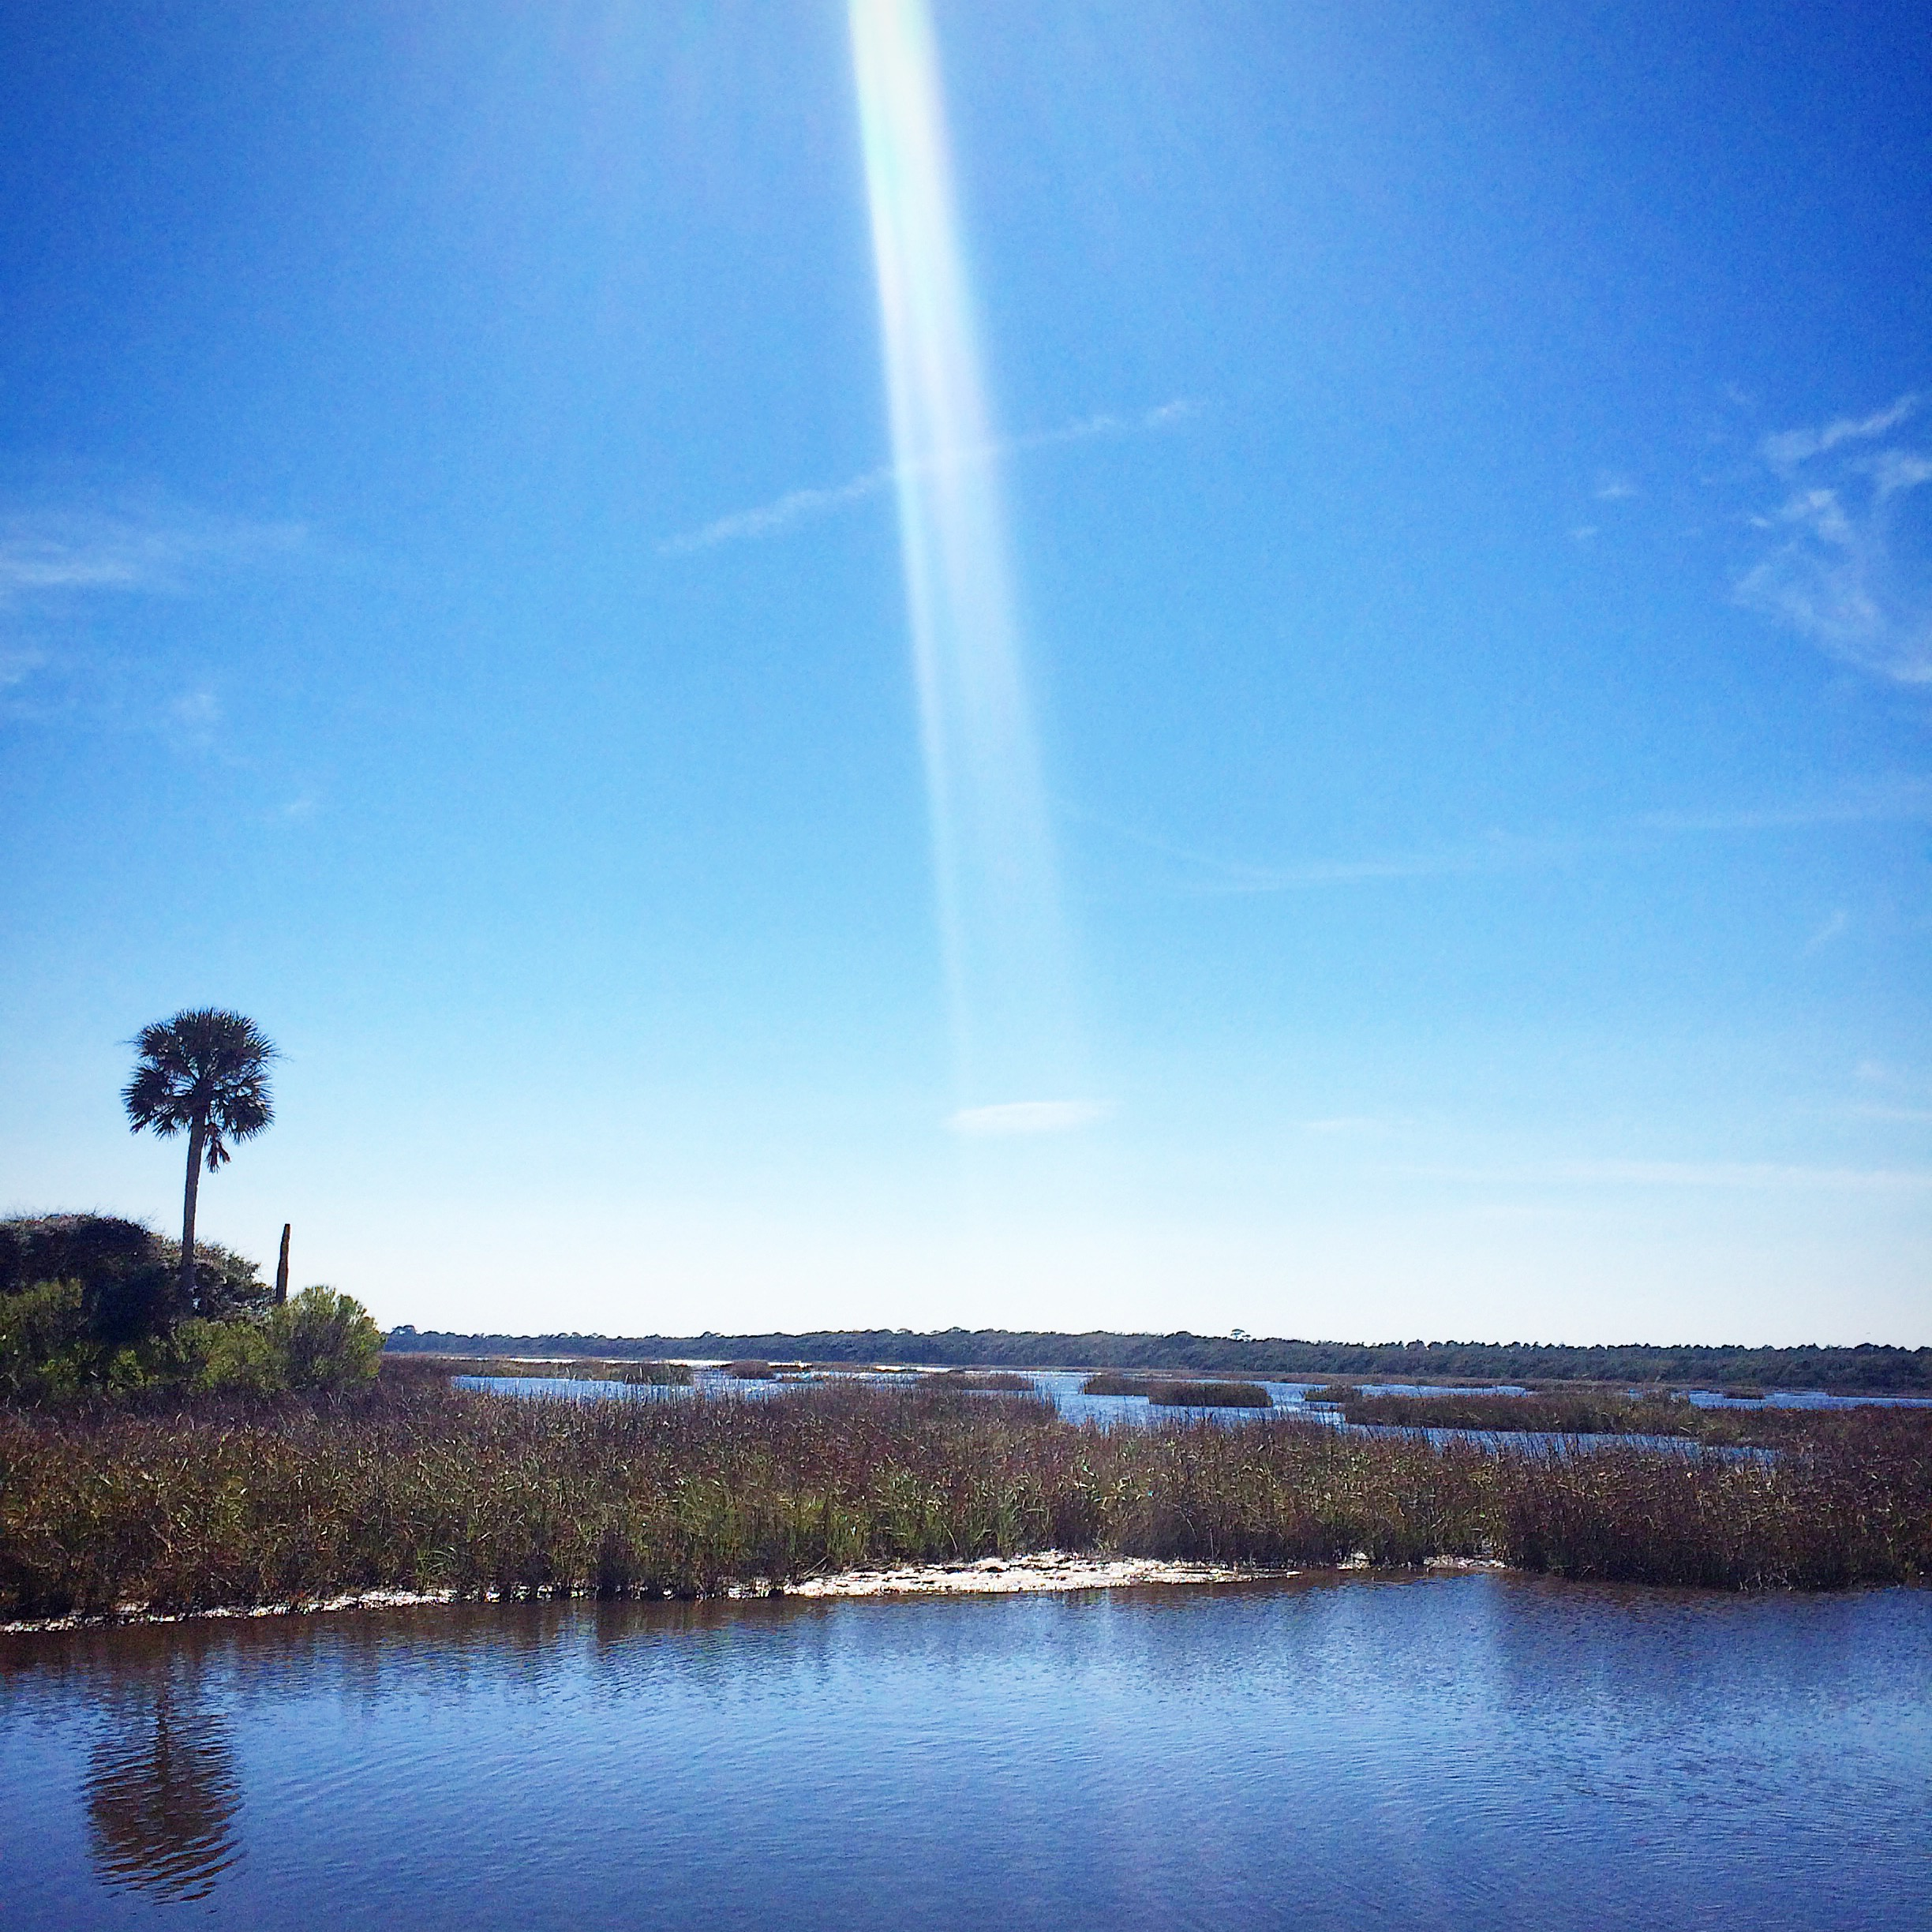 Sunshine on the Intracoastal Waterway